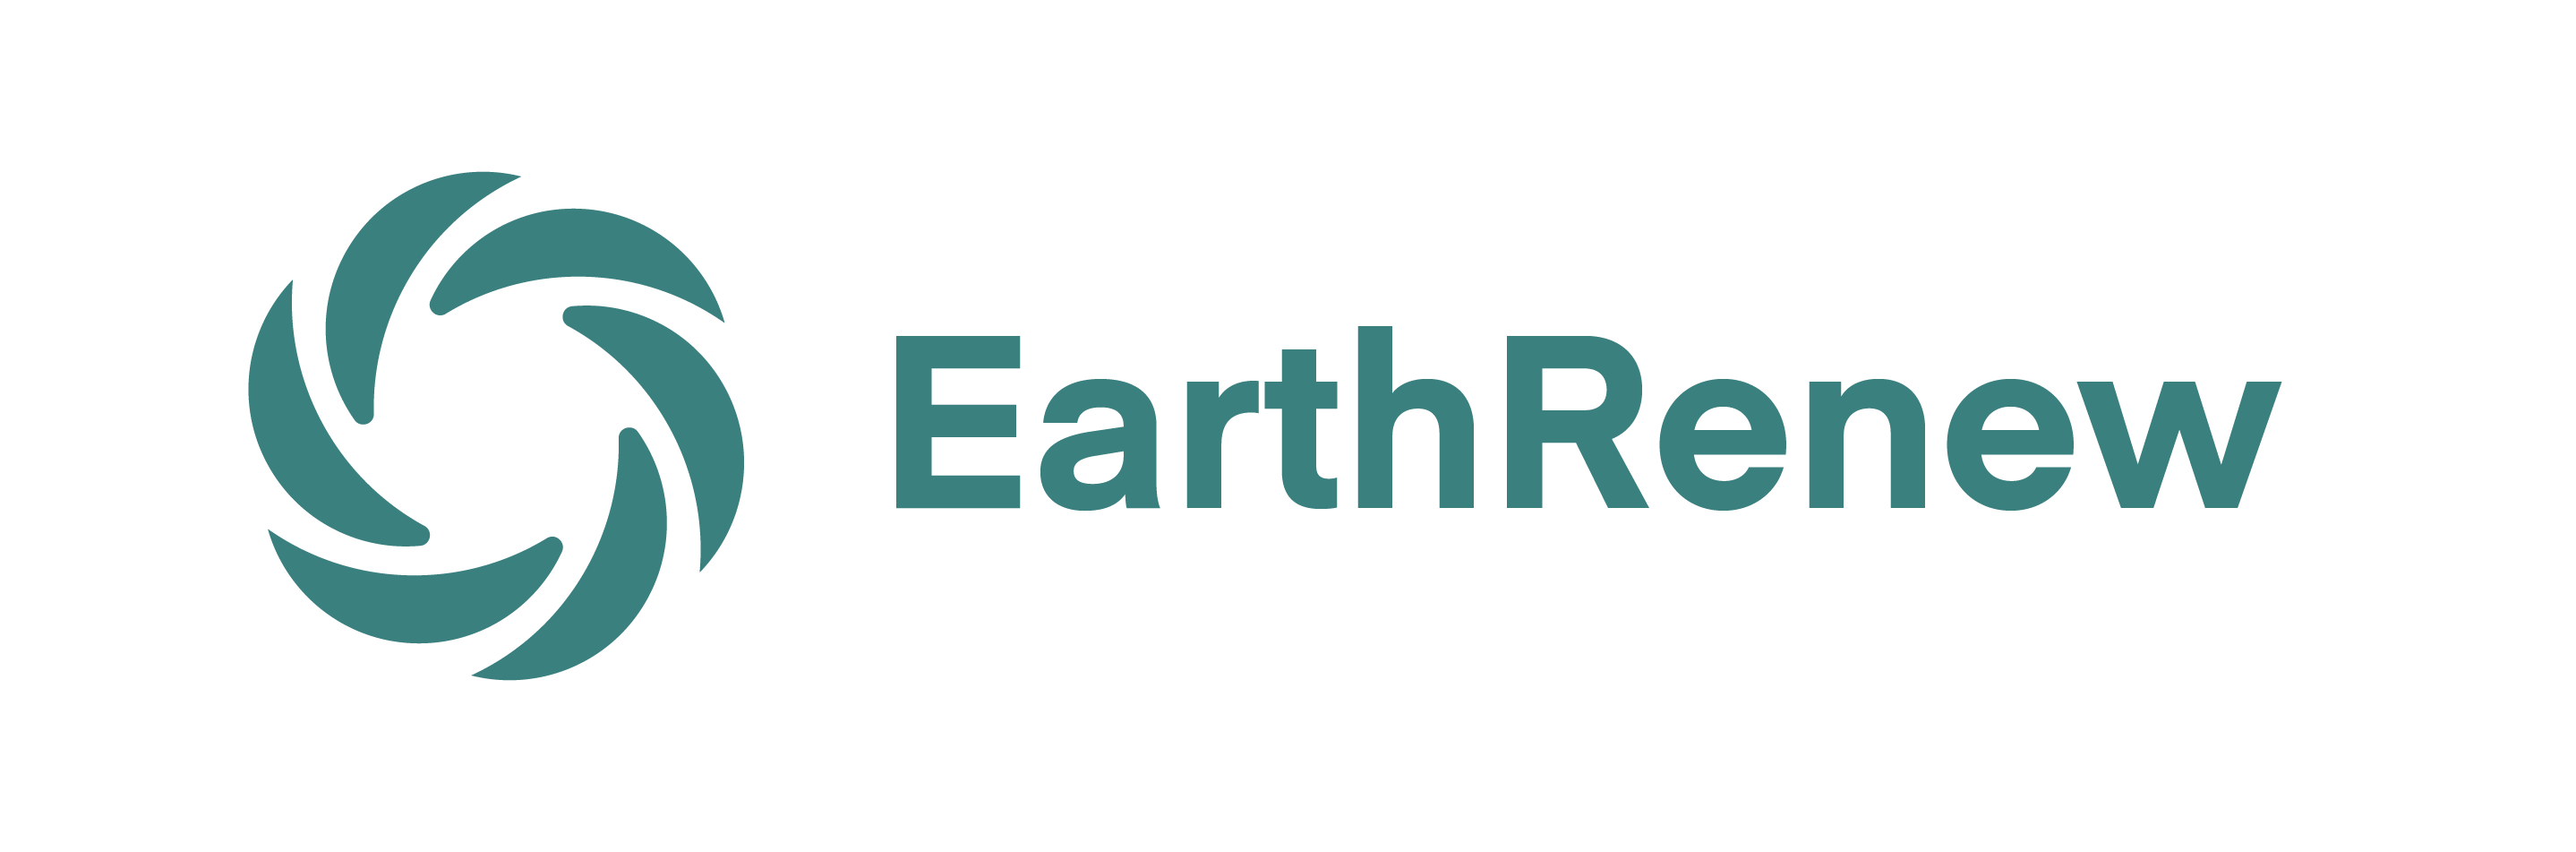 EarthRenew Announces Up to C$10m Equity Facility With Alumina